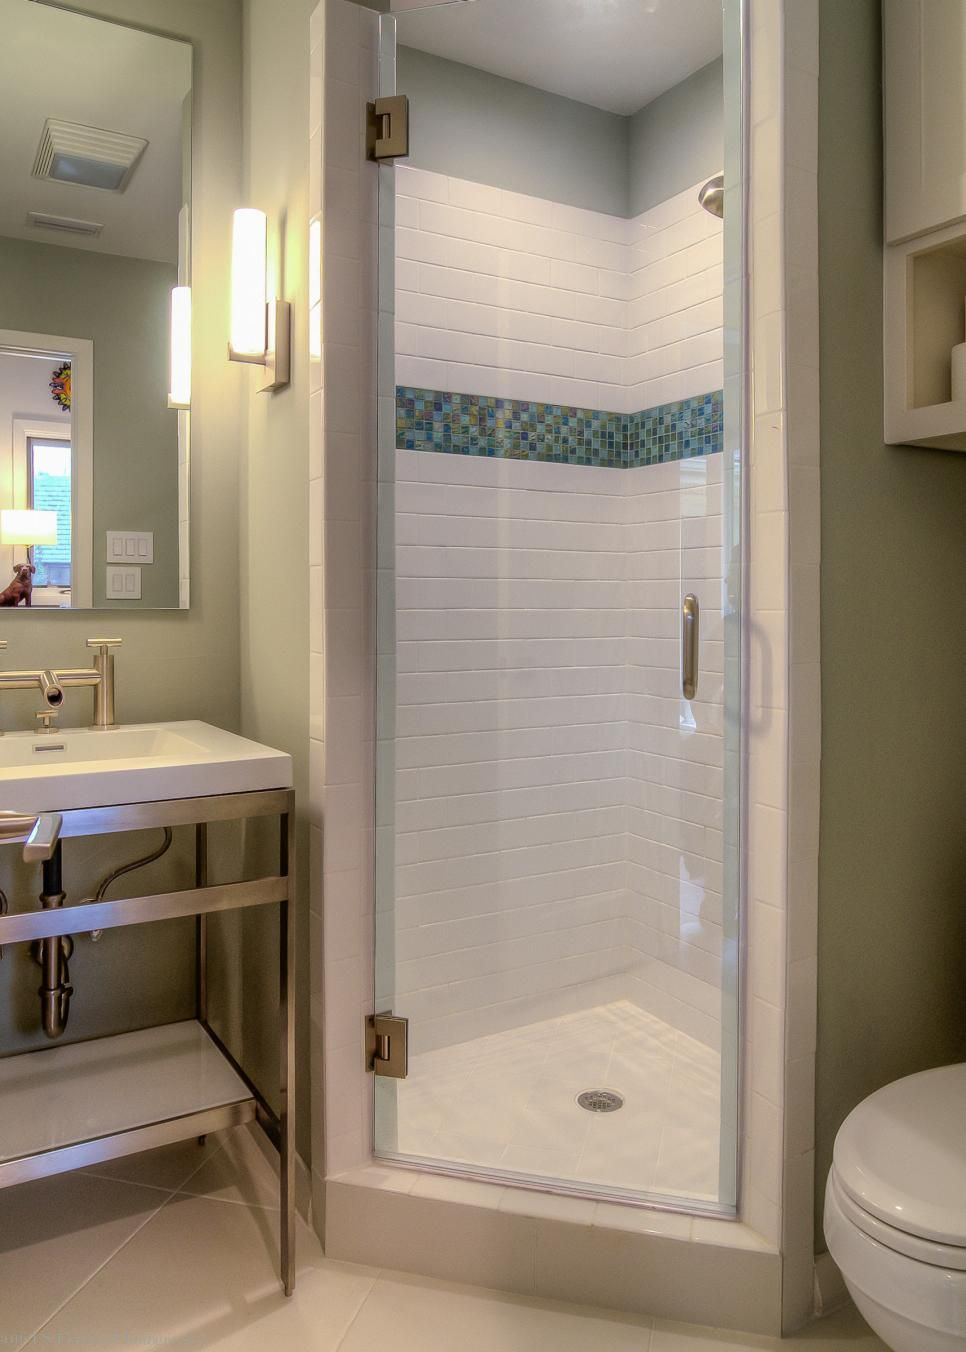 Corner Shower Without Full Glass Surrounds Small Bathroom Remodel Small Bathroom Makeover Small Bathroom Inspiration